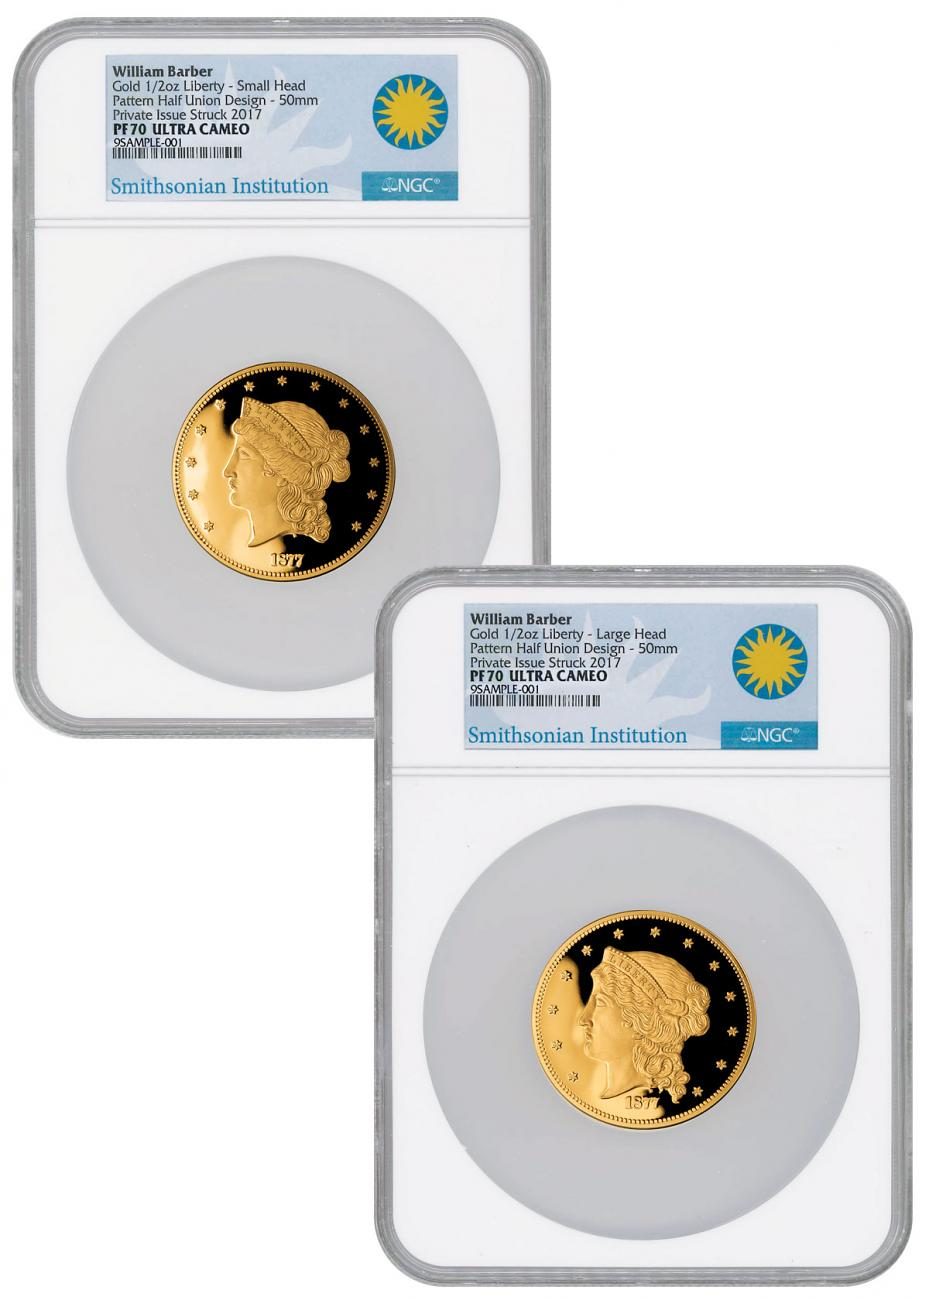 2-Medal Set - (2017) William Barber 1877 Half-Union Pattern 1/2 oz Gold Proof Medal Scarce and Unique Coin Division NGC PF70 UC